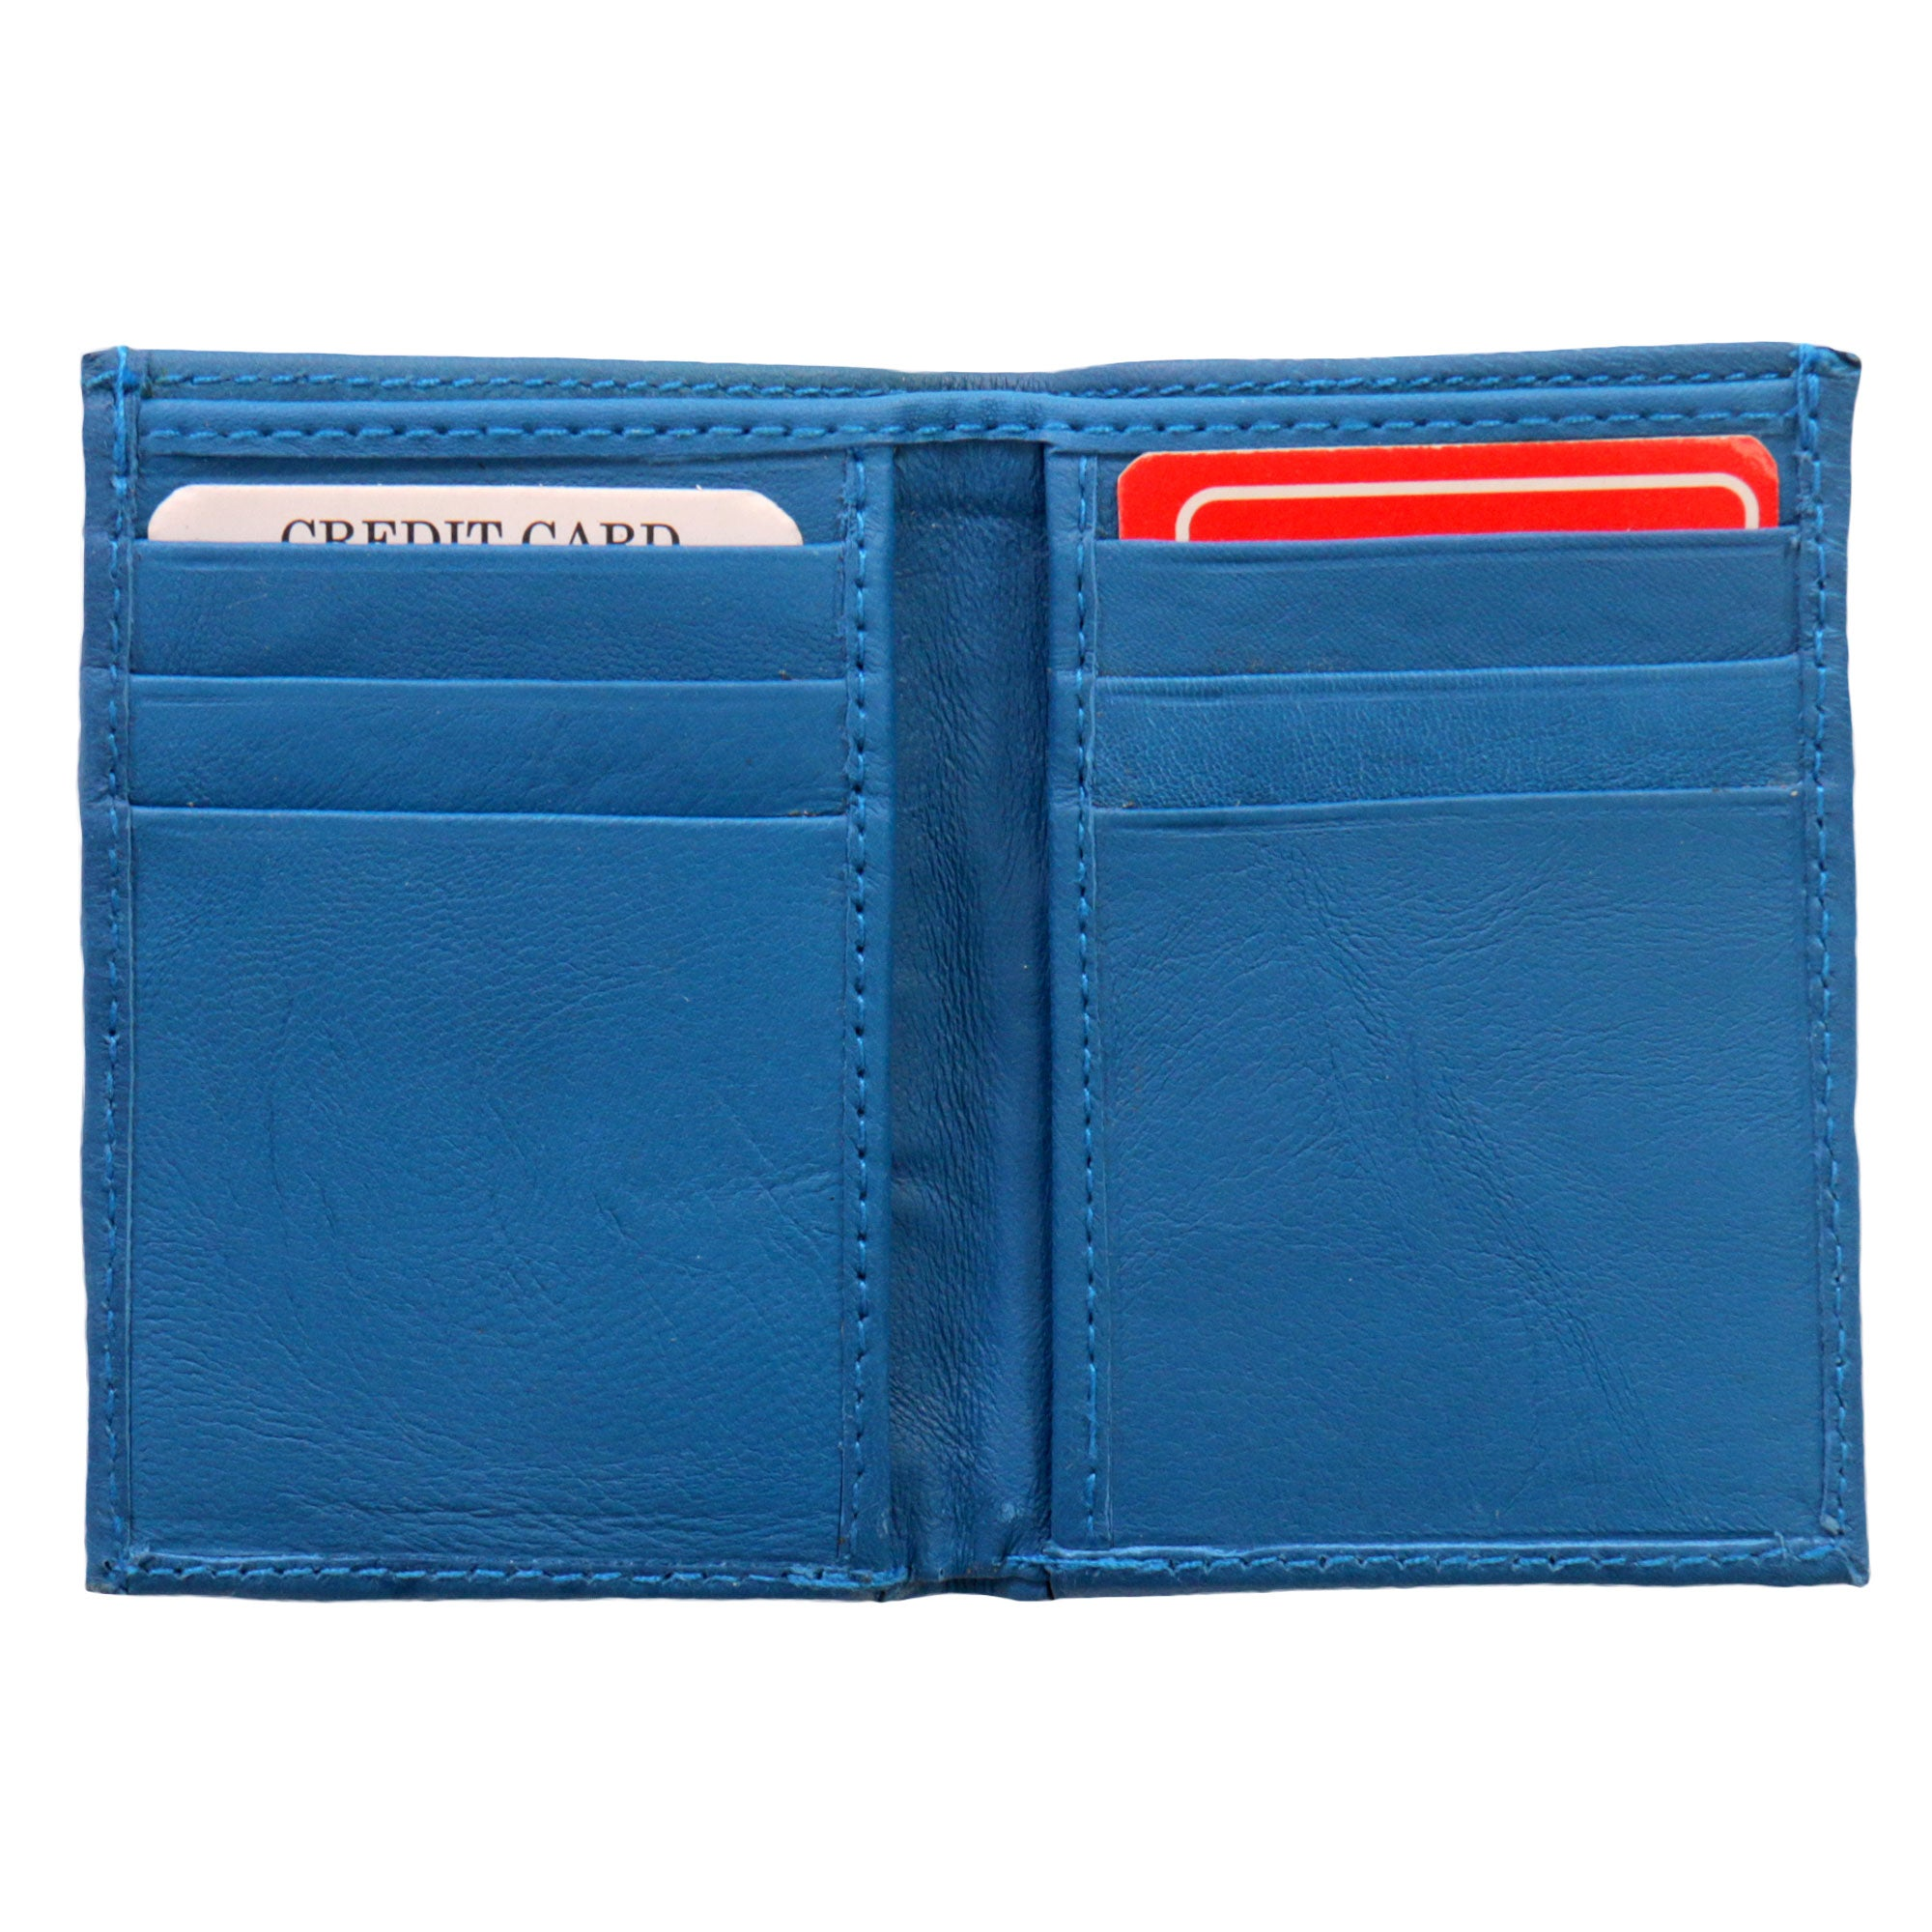 Hot Leathers Blue Credit Card Holding Wallet